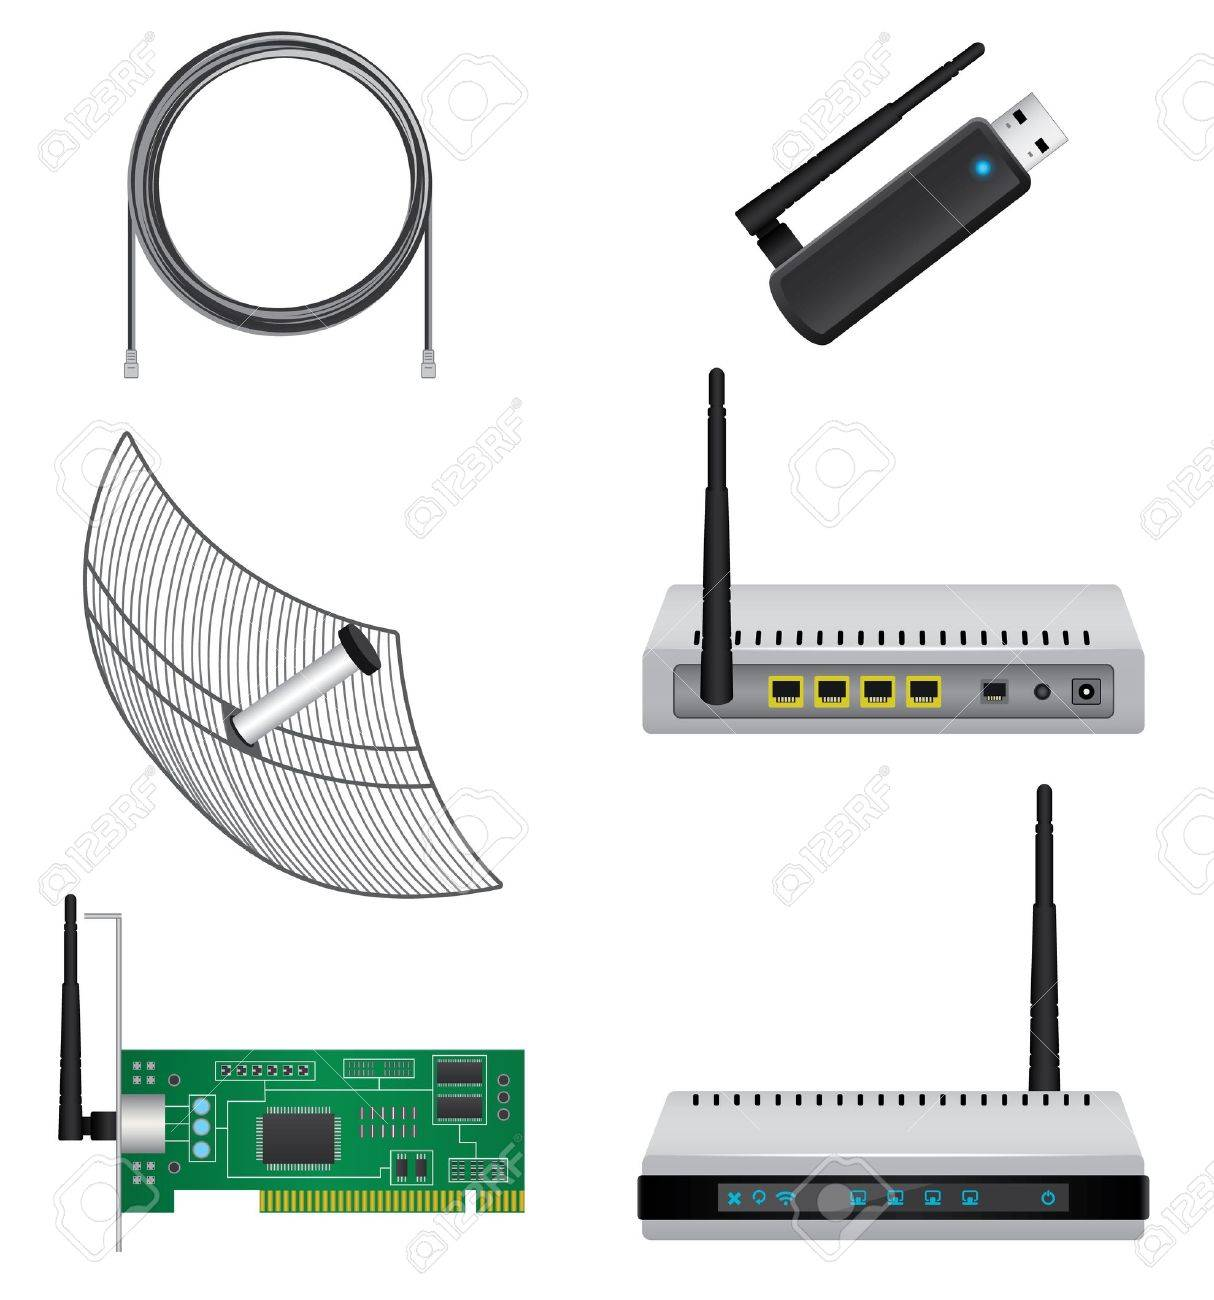 Network hardware set Stock Vector - 20682775